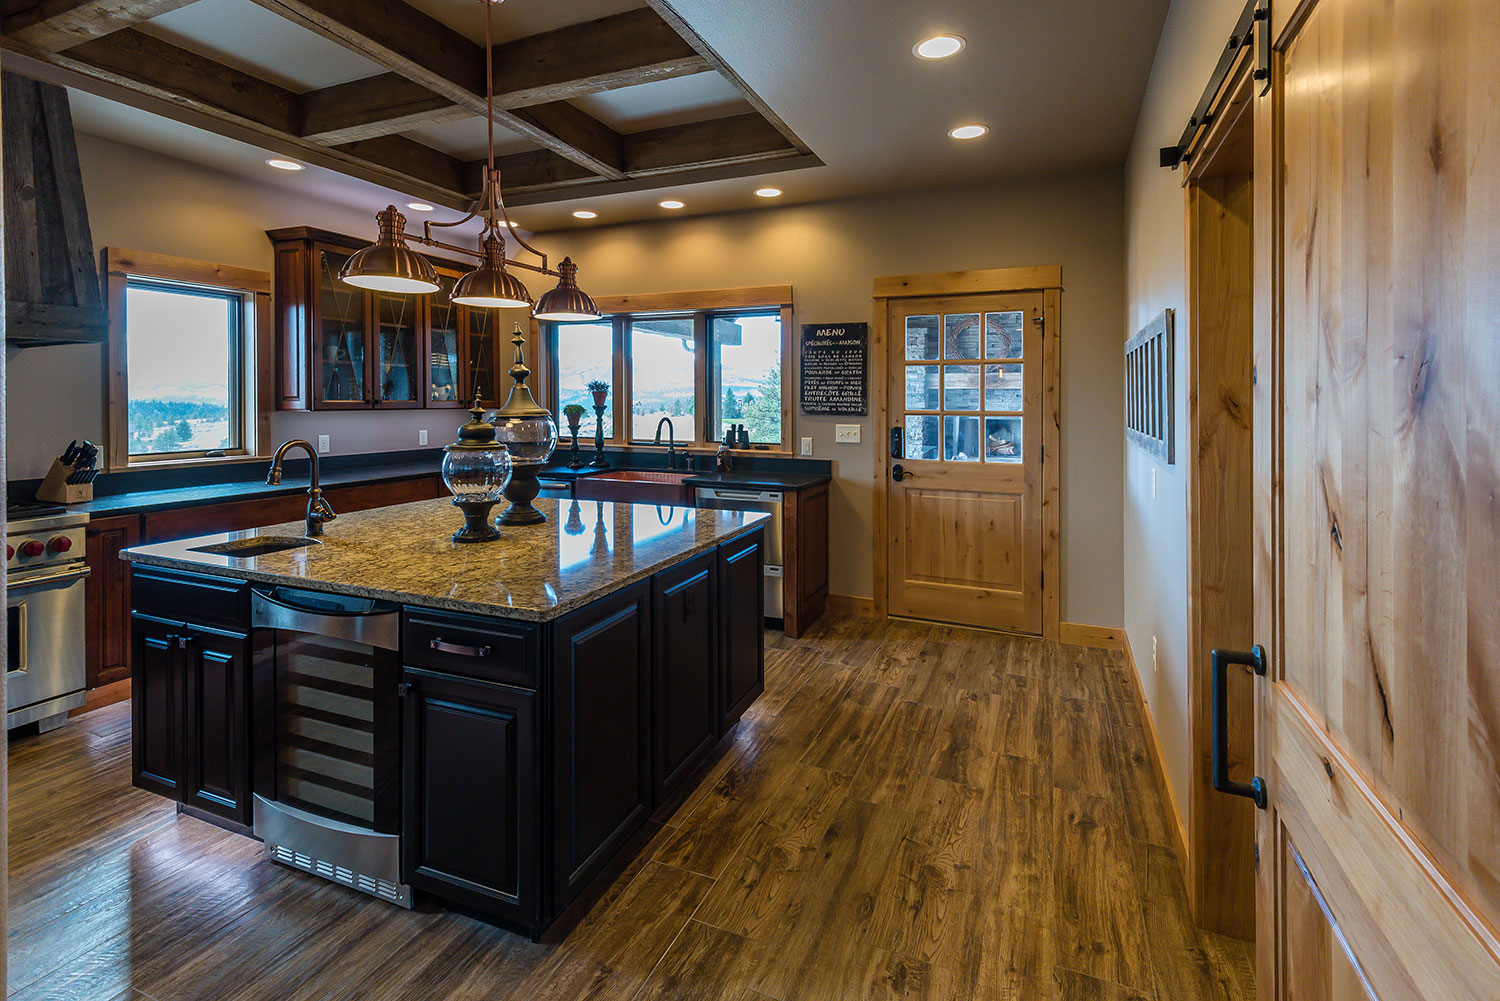 Rustic kitchen with granite countertops and copper farmhouse sink and exposed wood beams in ceiling